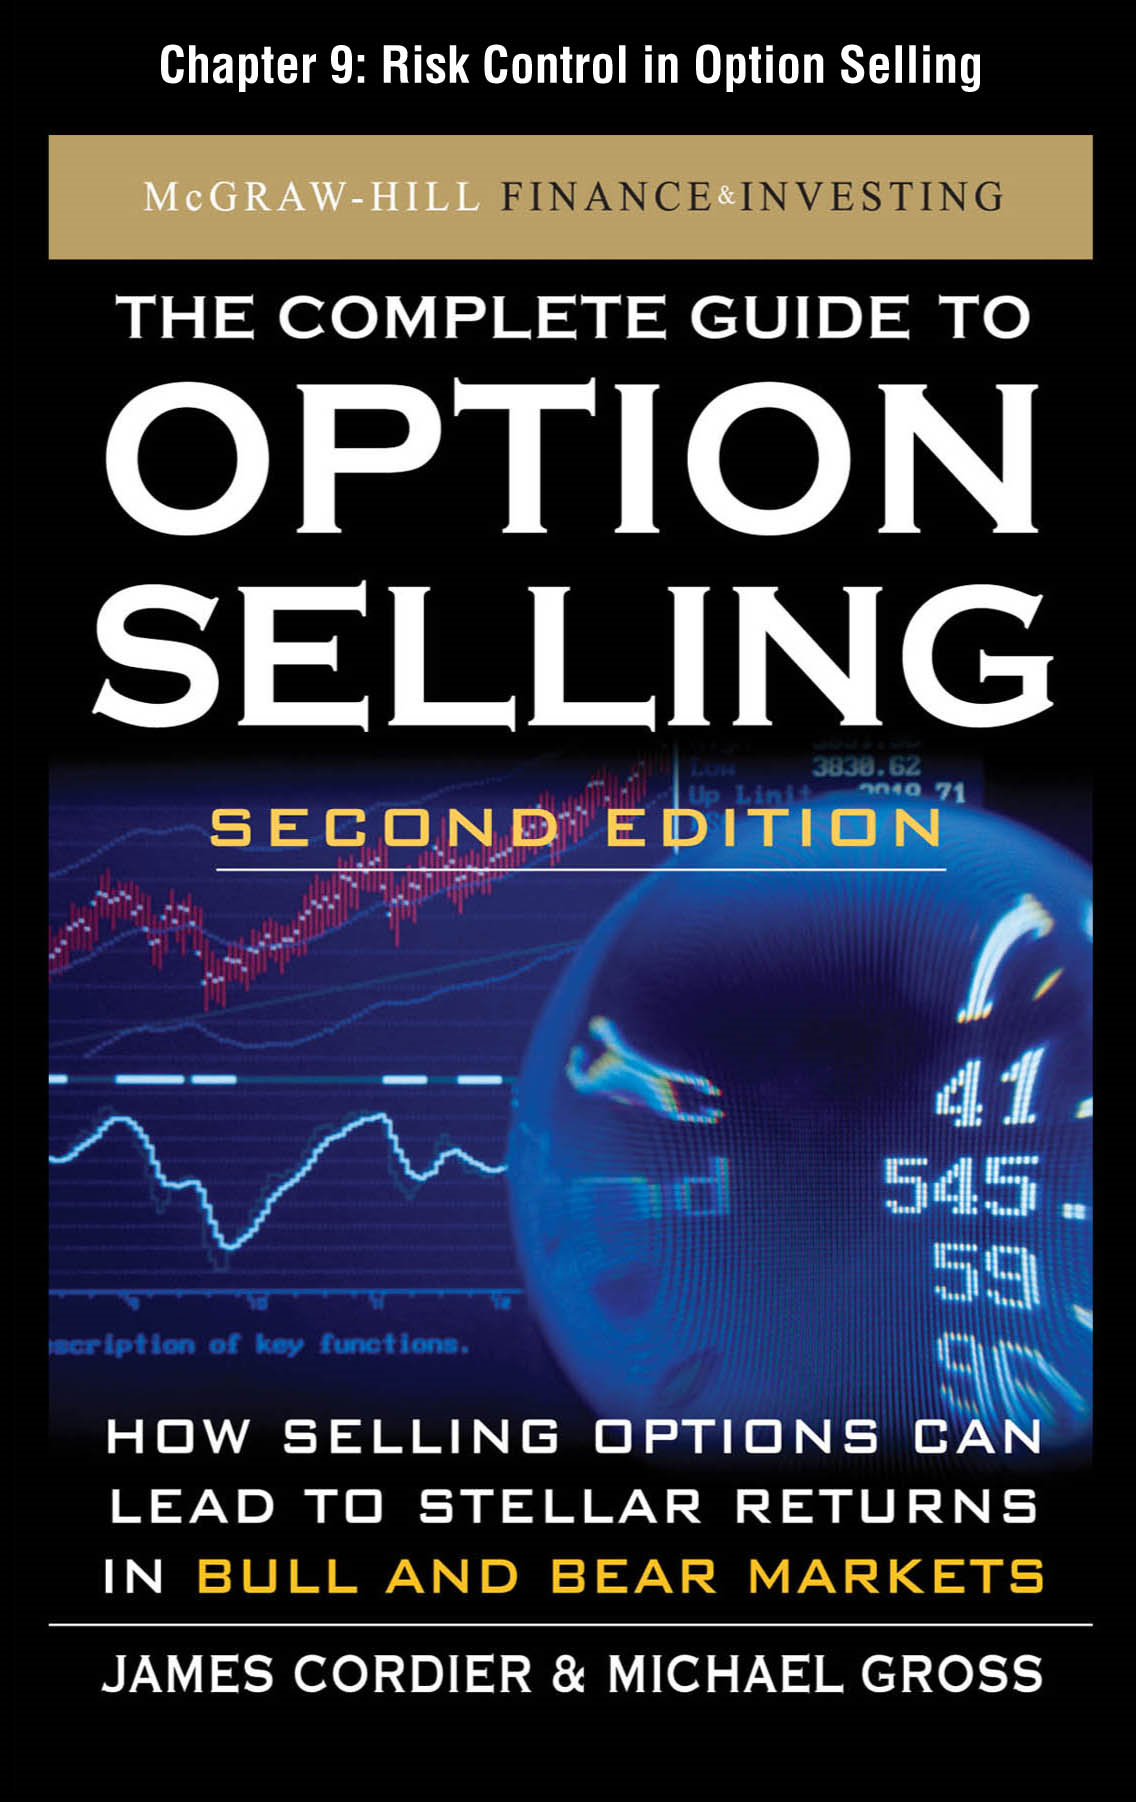 The Complete Guide to Option Selling, Second Edition, Chapter 9 - Risk Control in Option Selling